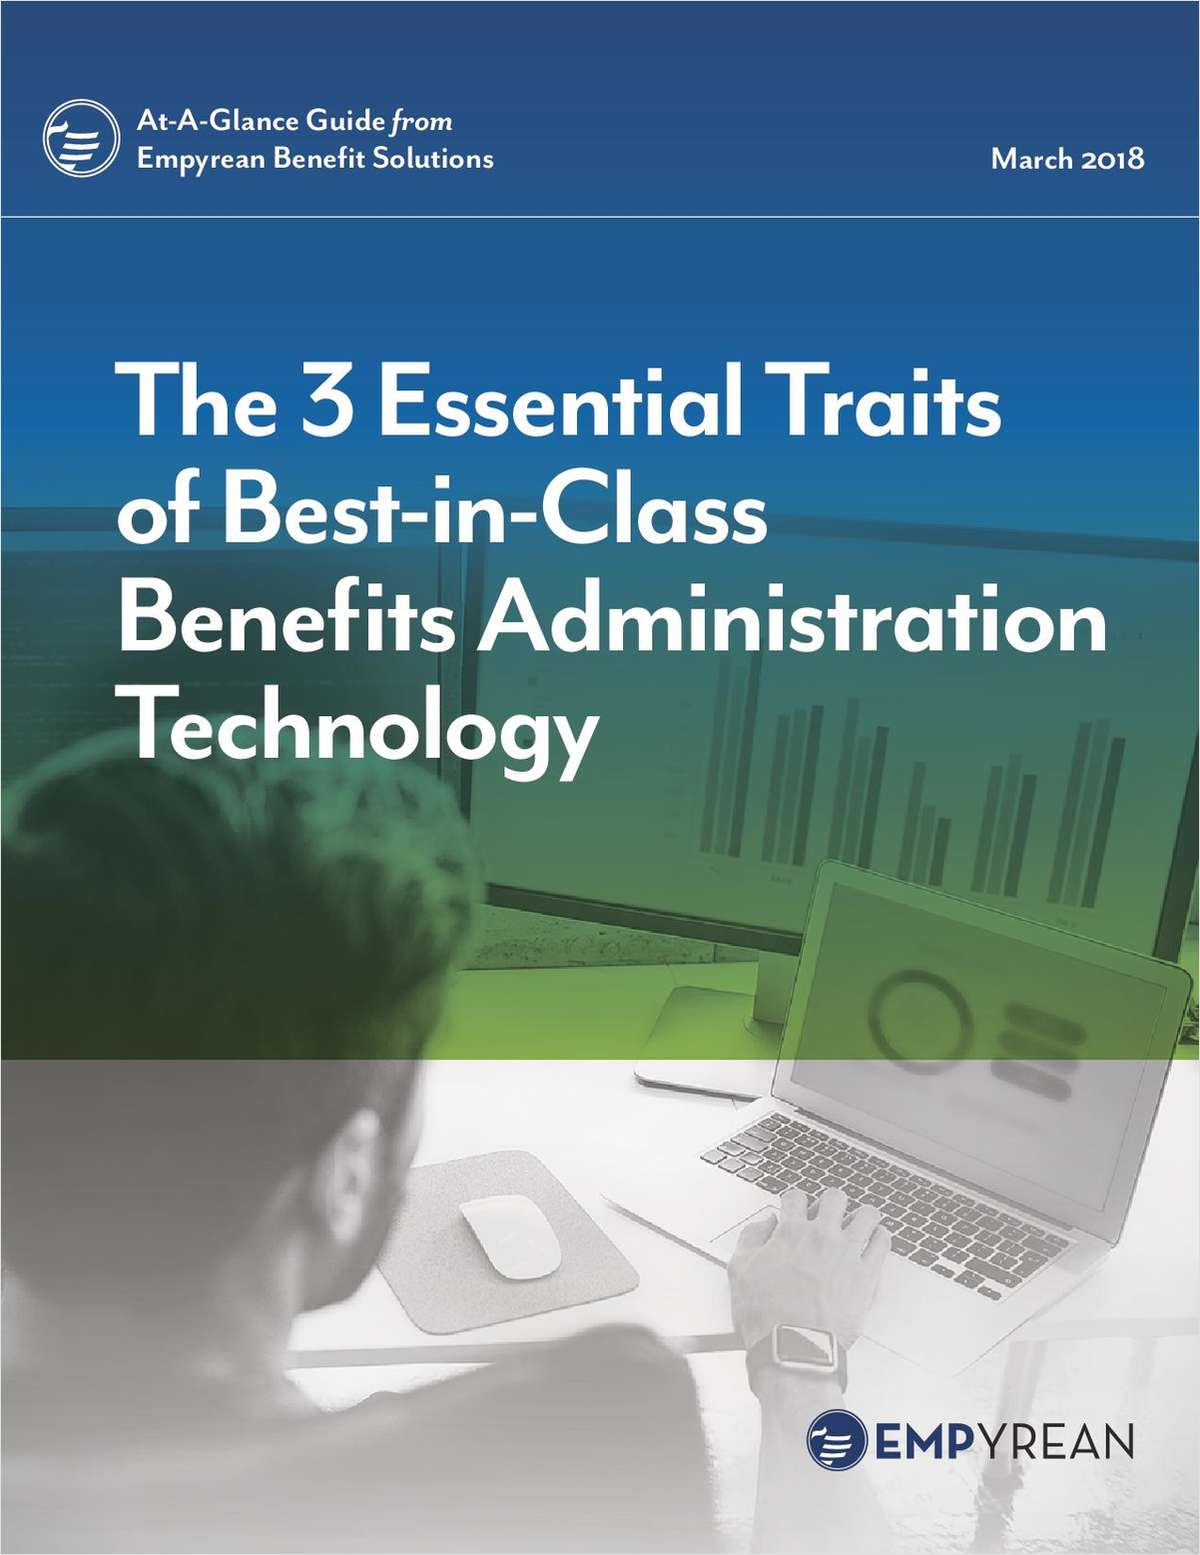 The 3 Essential Traits of Best-in-Class Benefits Administration Technology